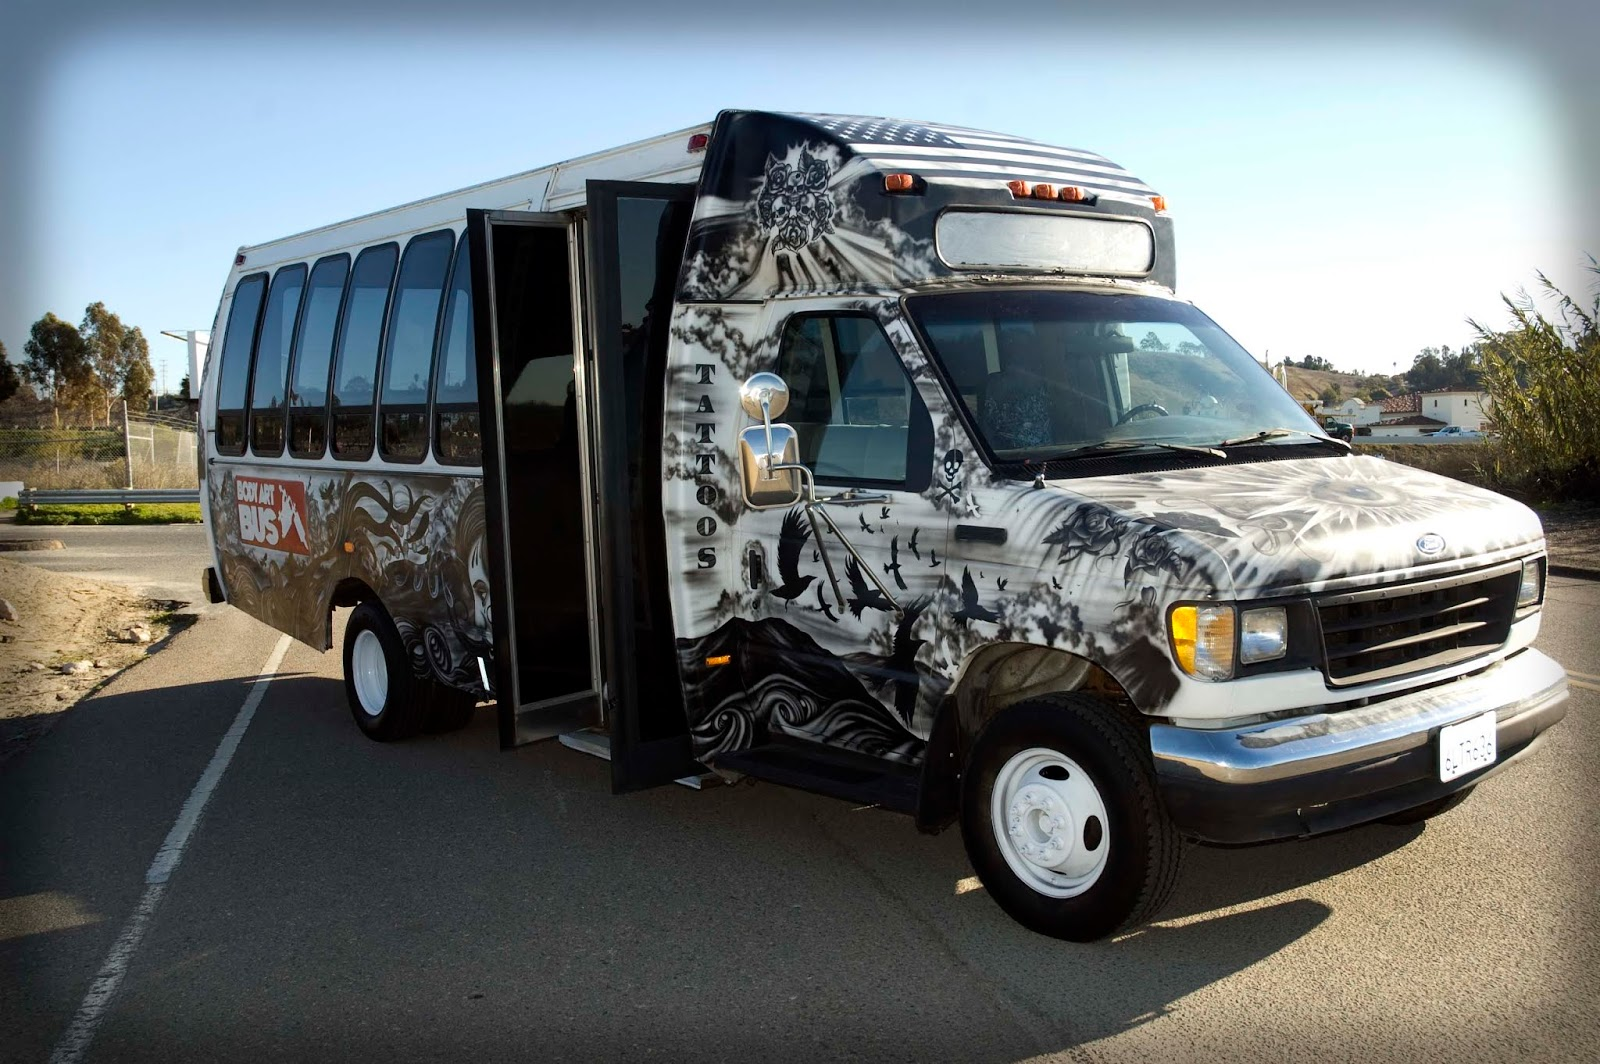 Body Art Bus